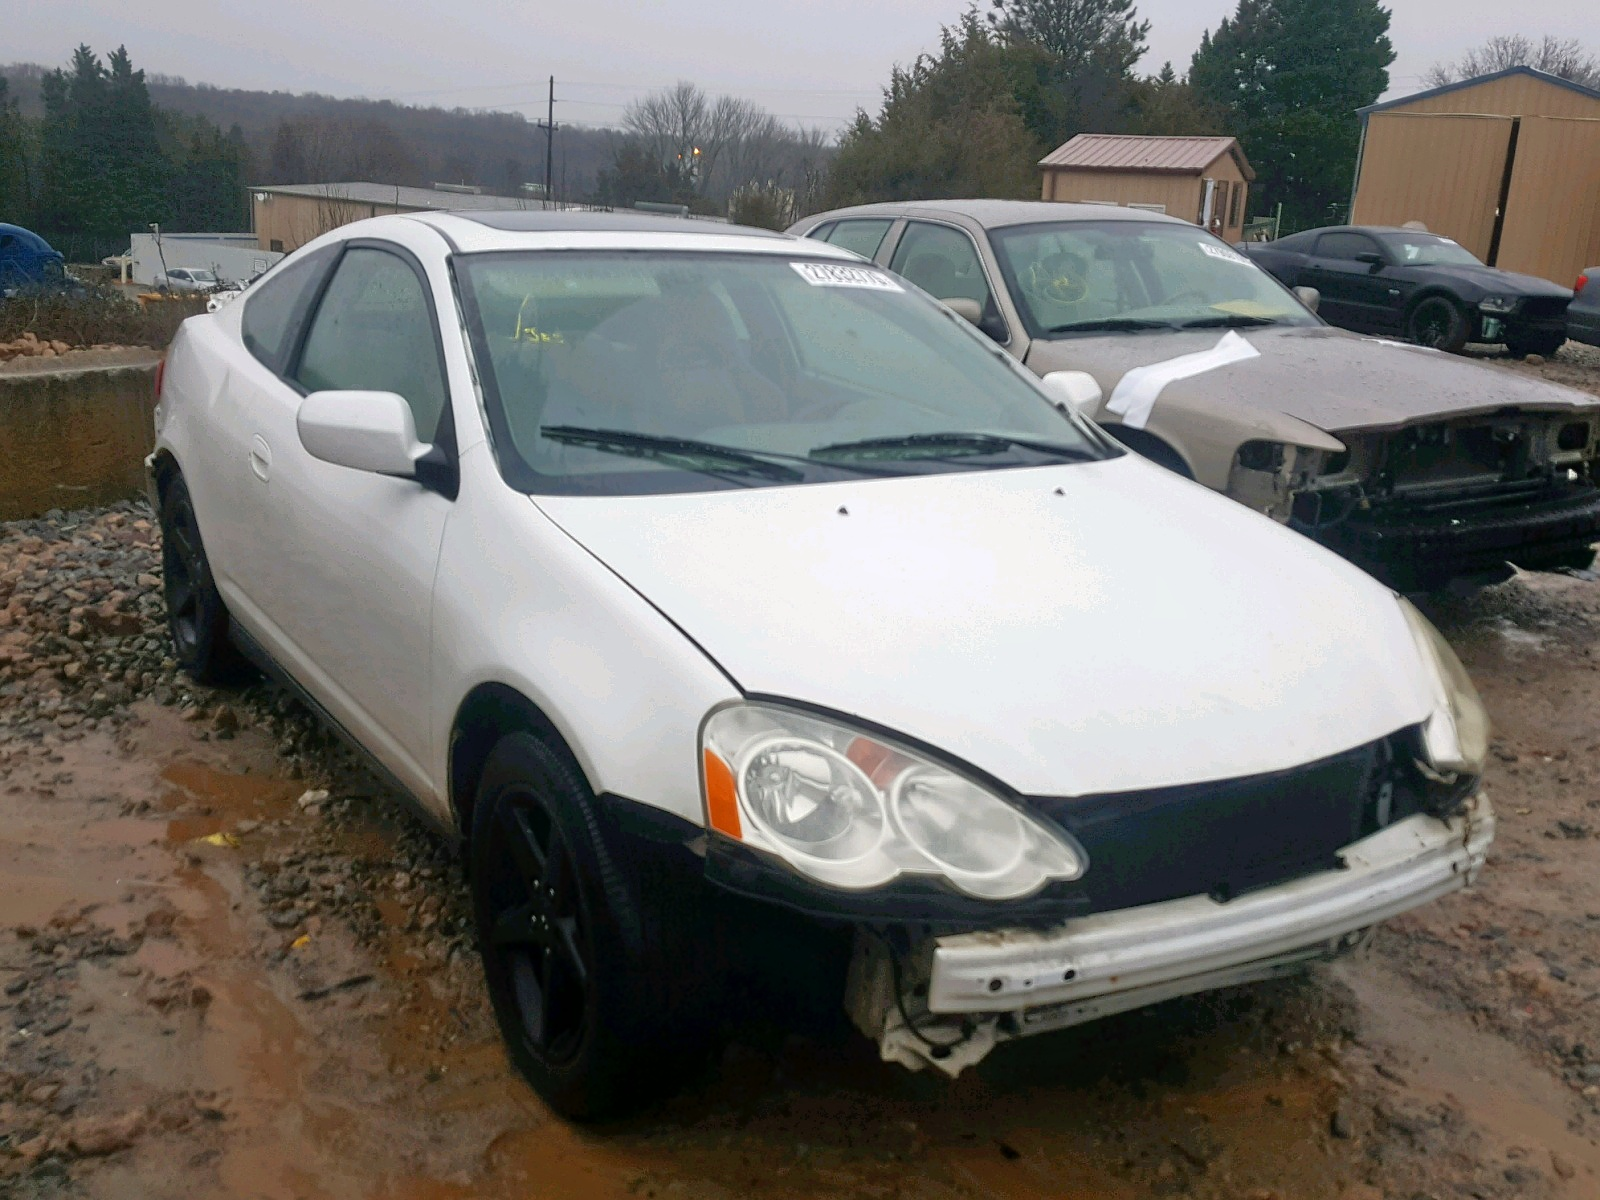 Salvage 2002 Acura RSX for sale